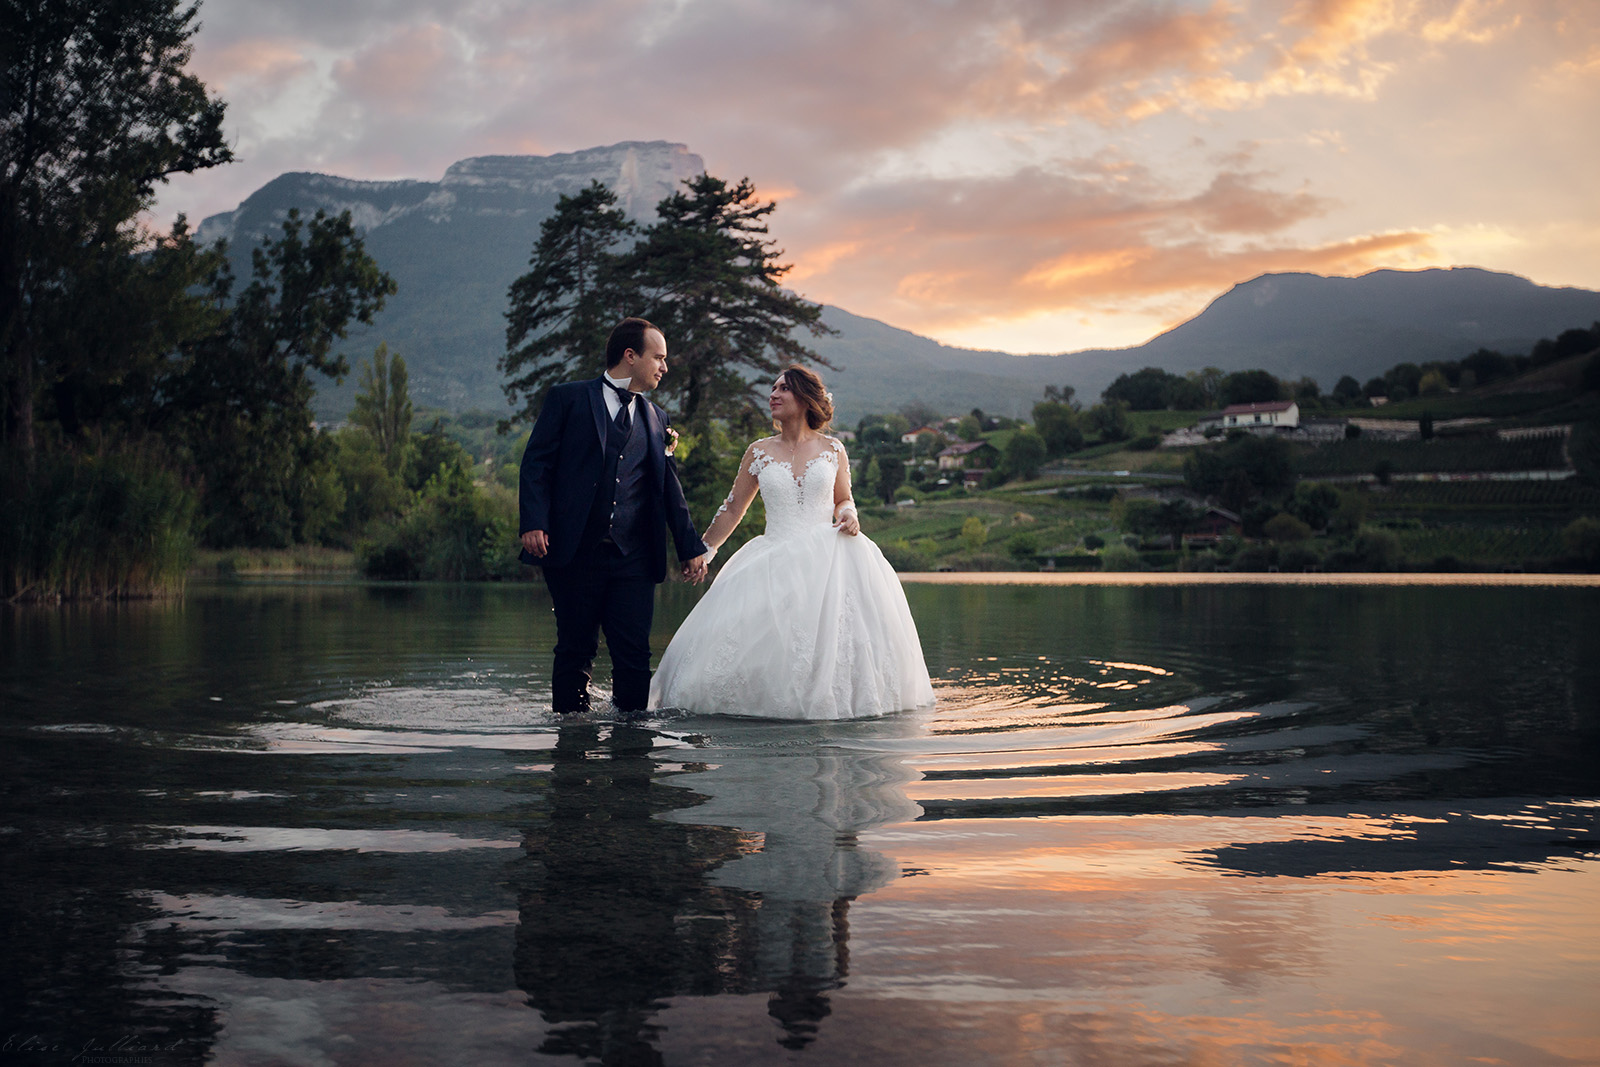 mariage-photographe-elise-julliard-wedding-love-session-lac-saint-andre-auvergne-rhone-alpes-lyon-chambery-seance-photo-couple-trash-the-dress-13